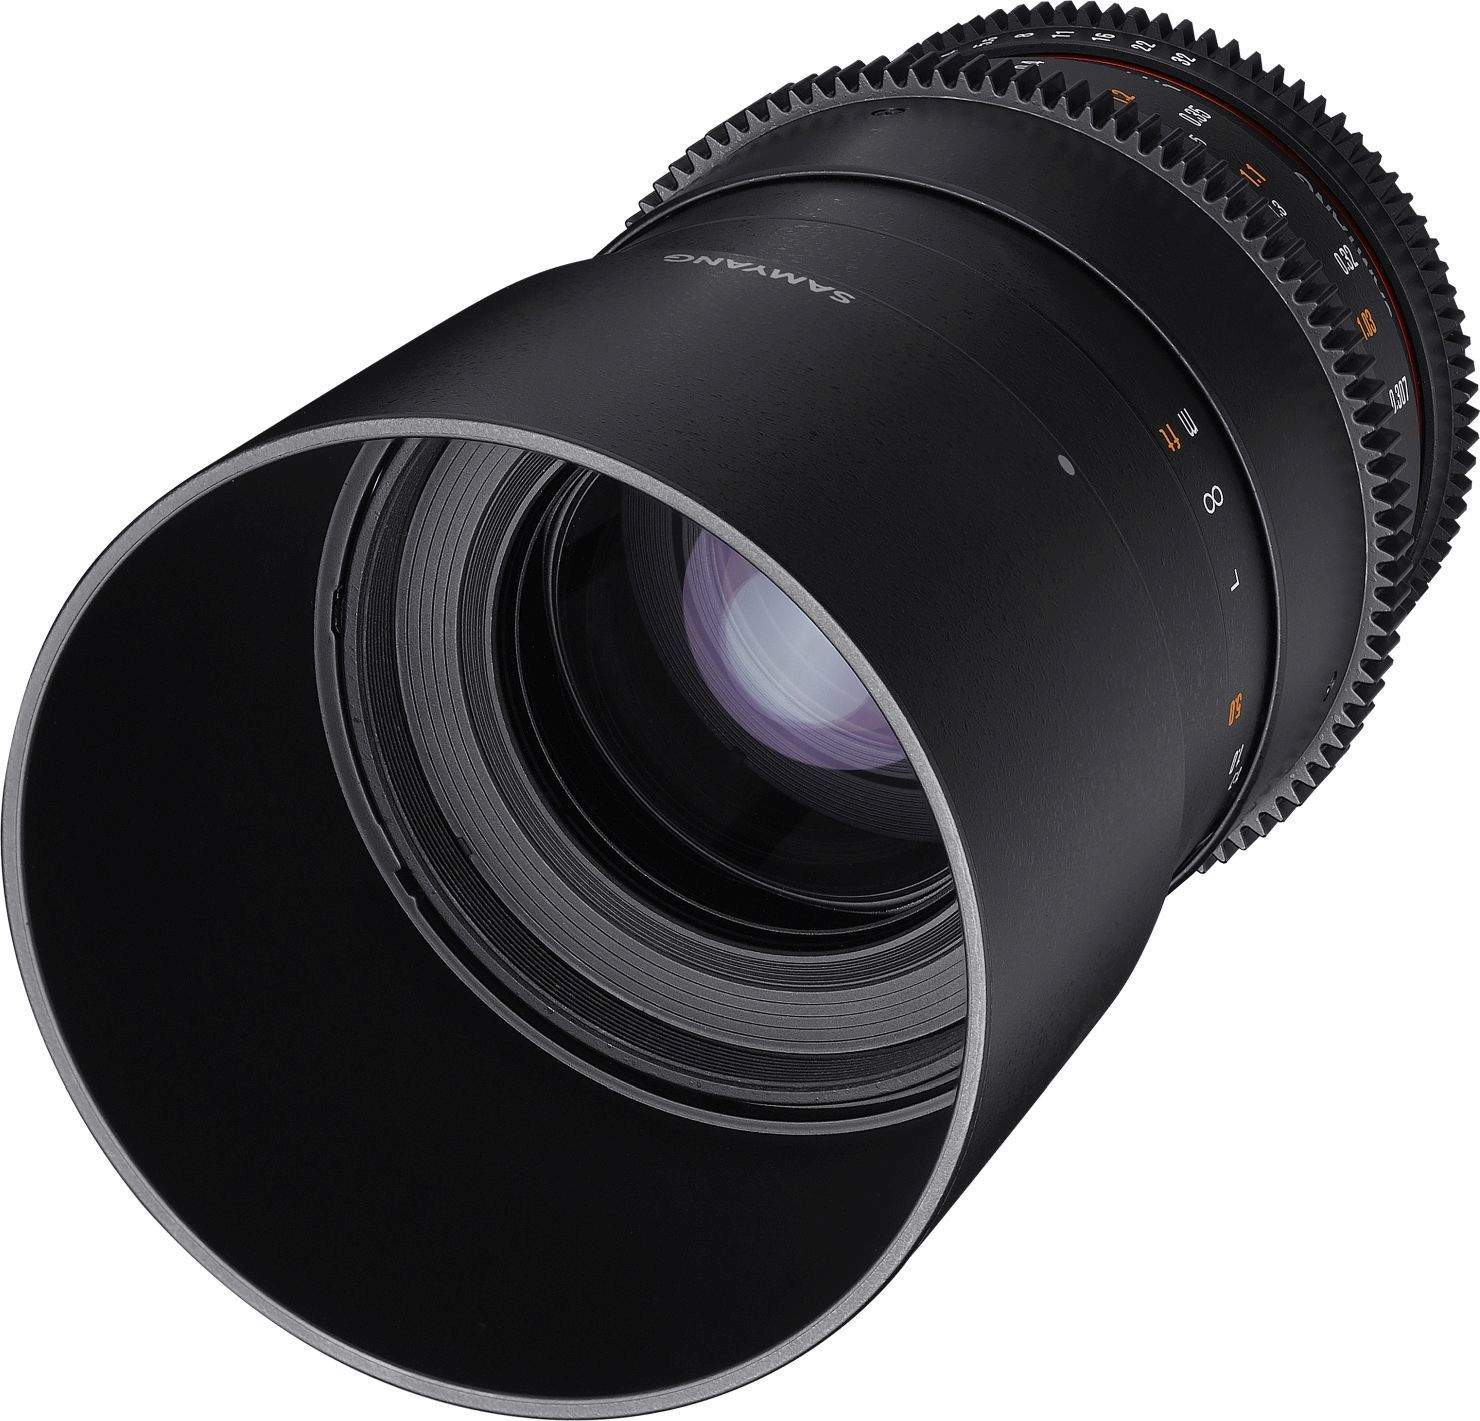 100mm T3.1 Macro VDSLR UMC II Sony FE Full Frame Video Lens